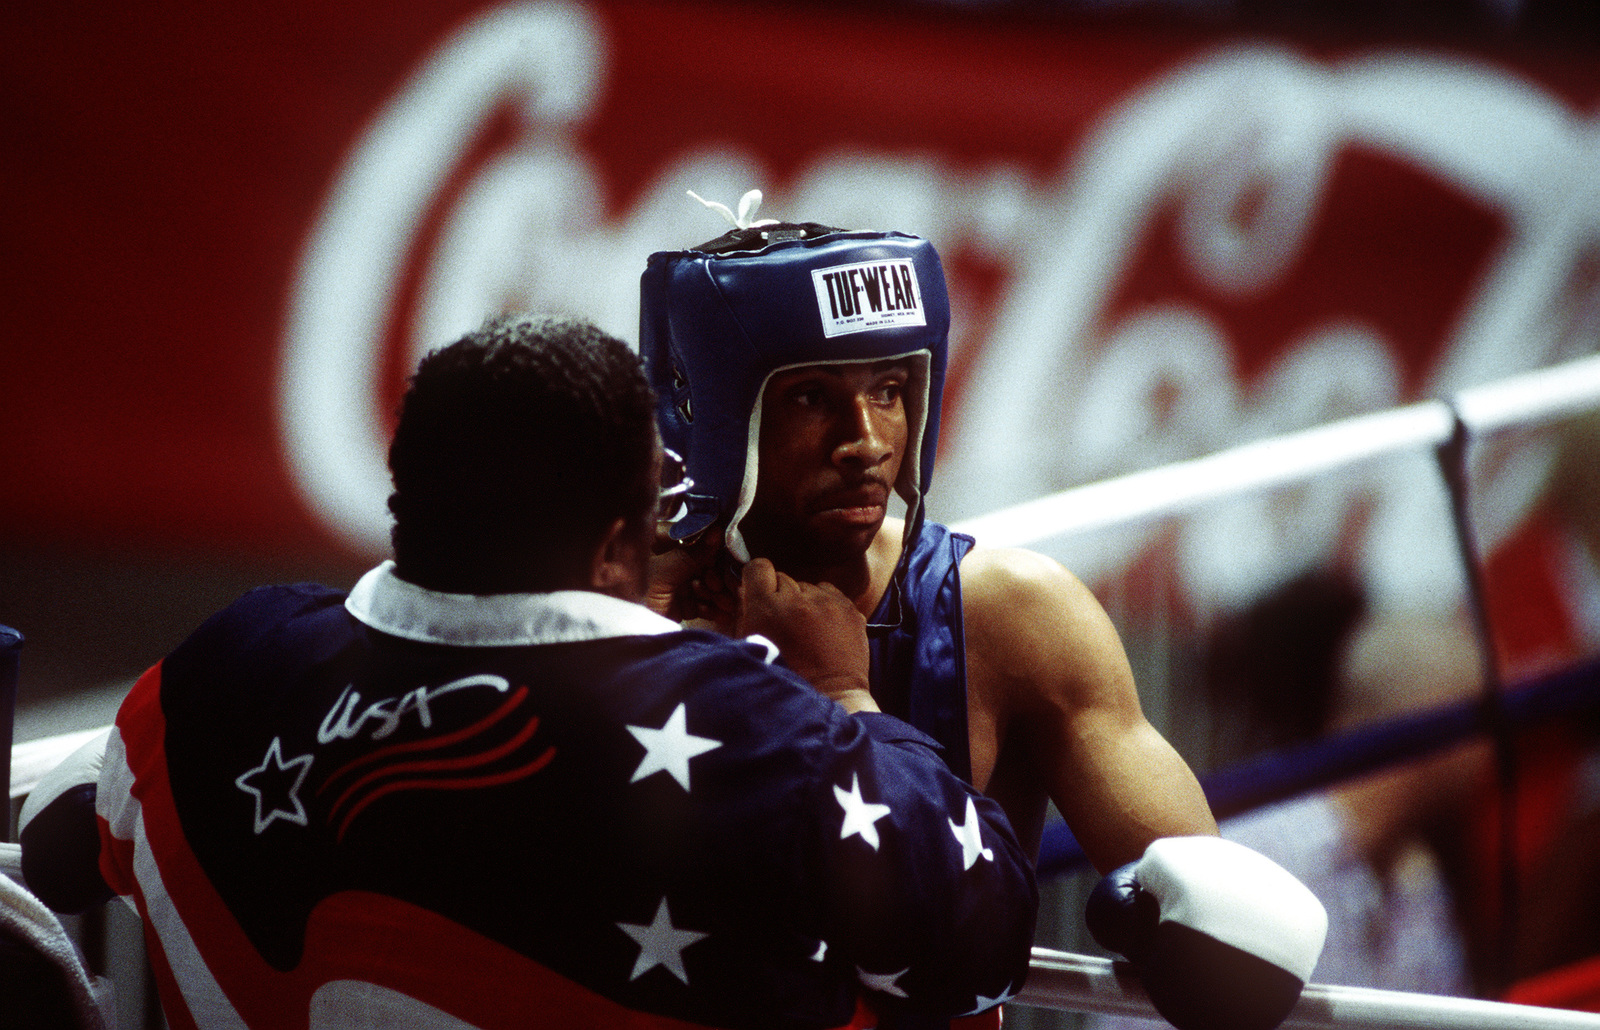 Boxing Coach Tom Mustin fastens the head protector on Air Force Boxer, STAFF SGT. Ron Simms, prior to his second middleweight match against Marcus Thomas of Barbados at the Pan Am boxing venue Club Athletico Once Unidos